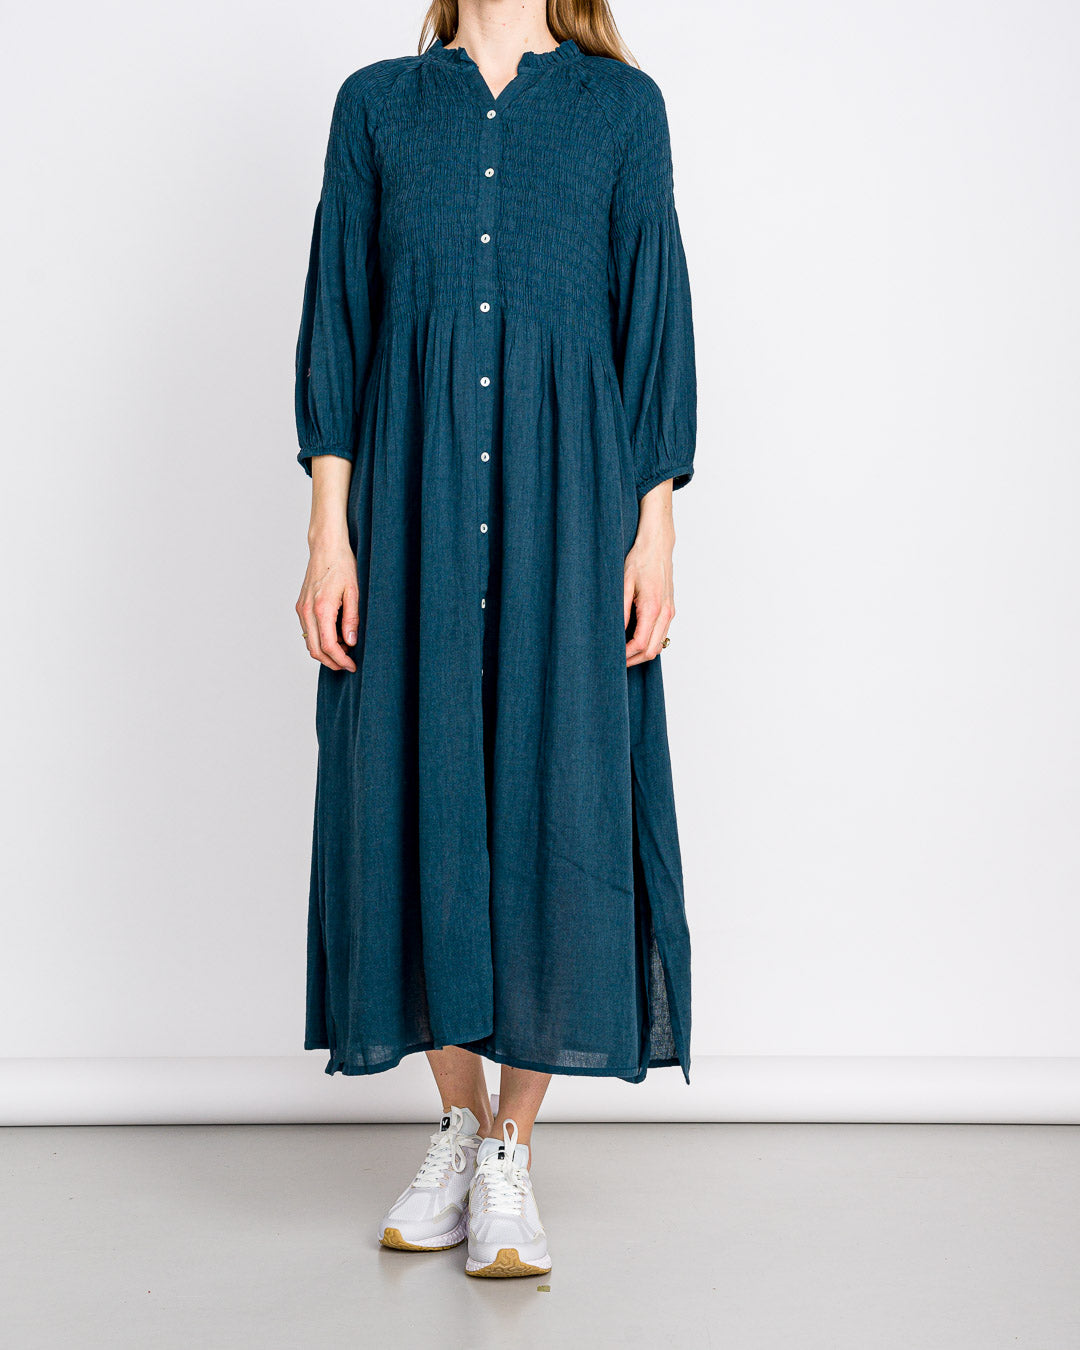 by-bar amsterdam // Kleid Loulou Smoked Oil Blue